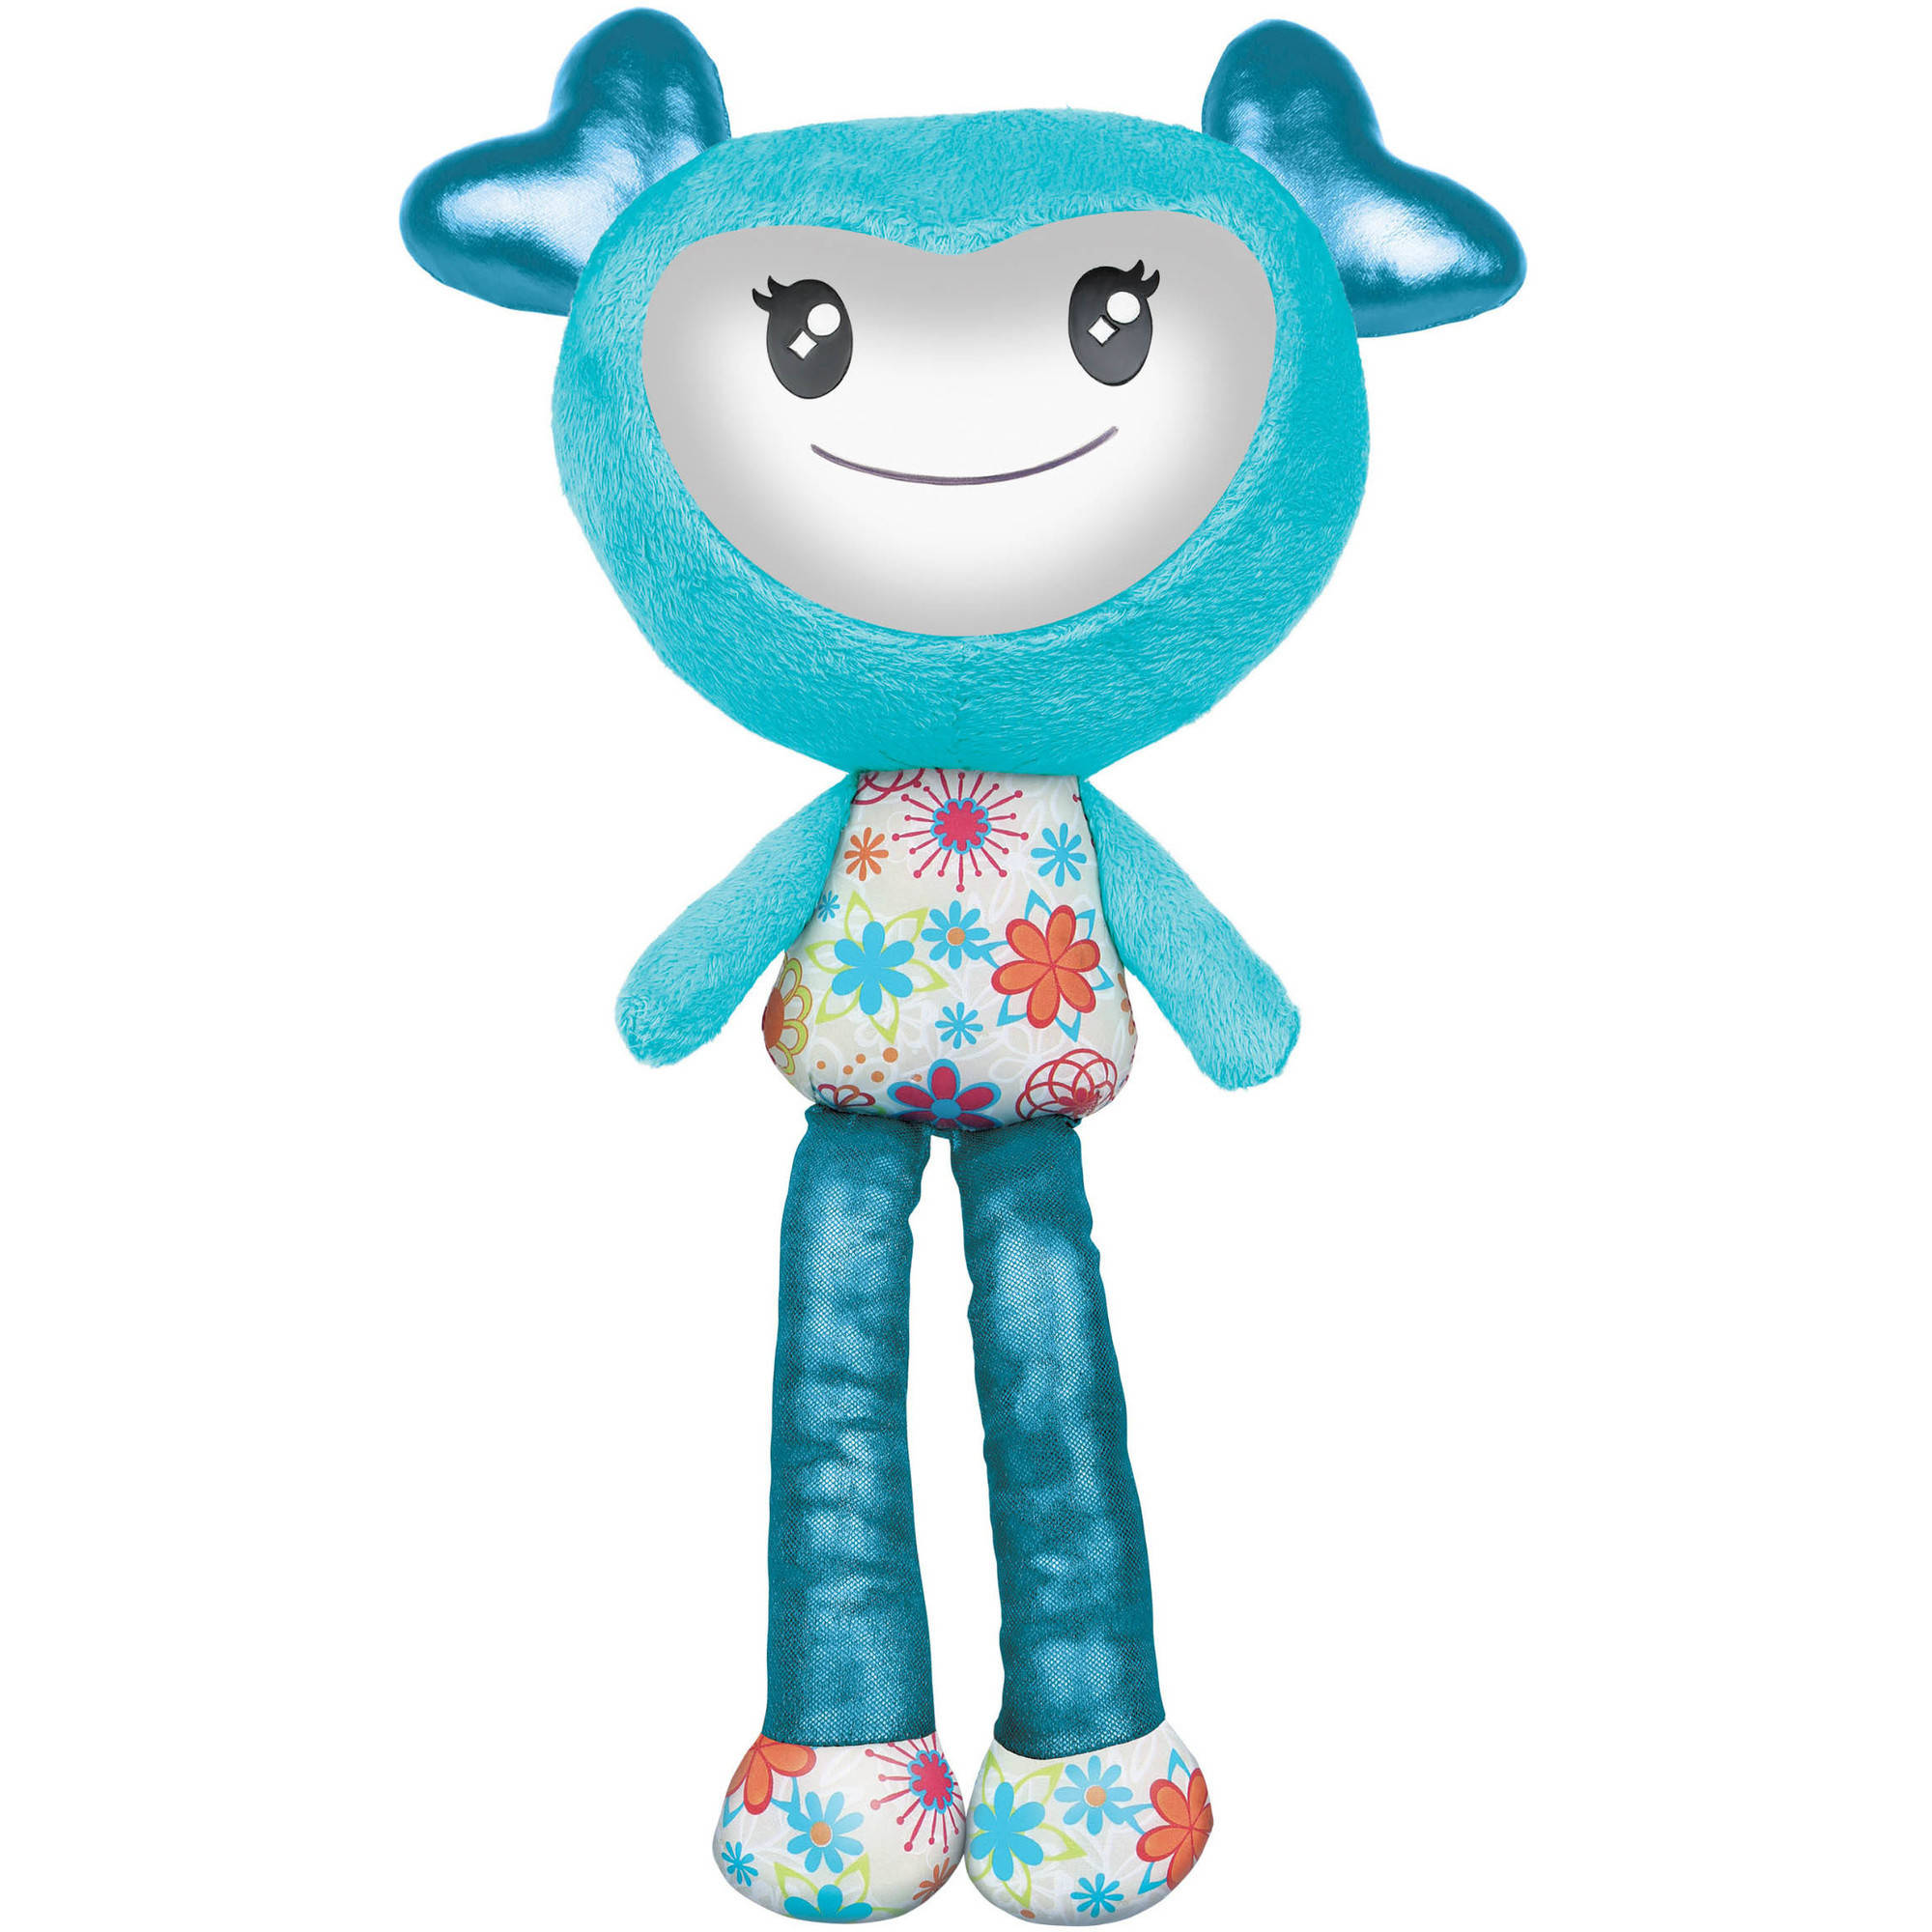 Brightlings Interactive Plush, Teal, 15